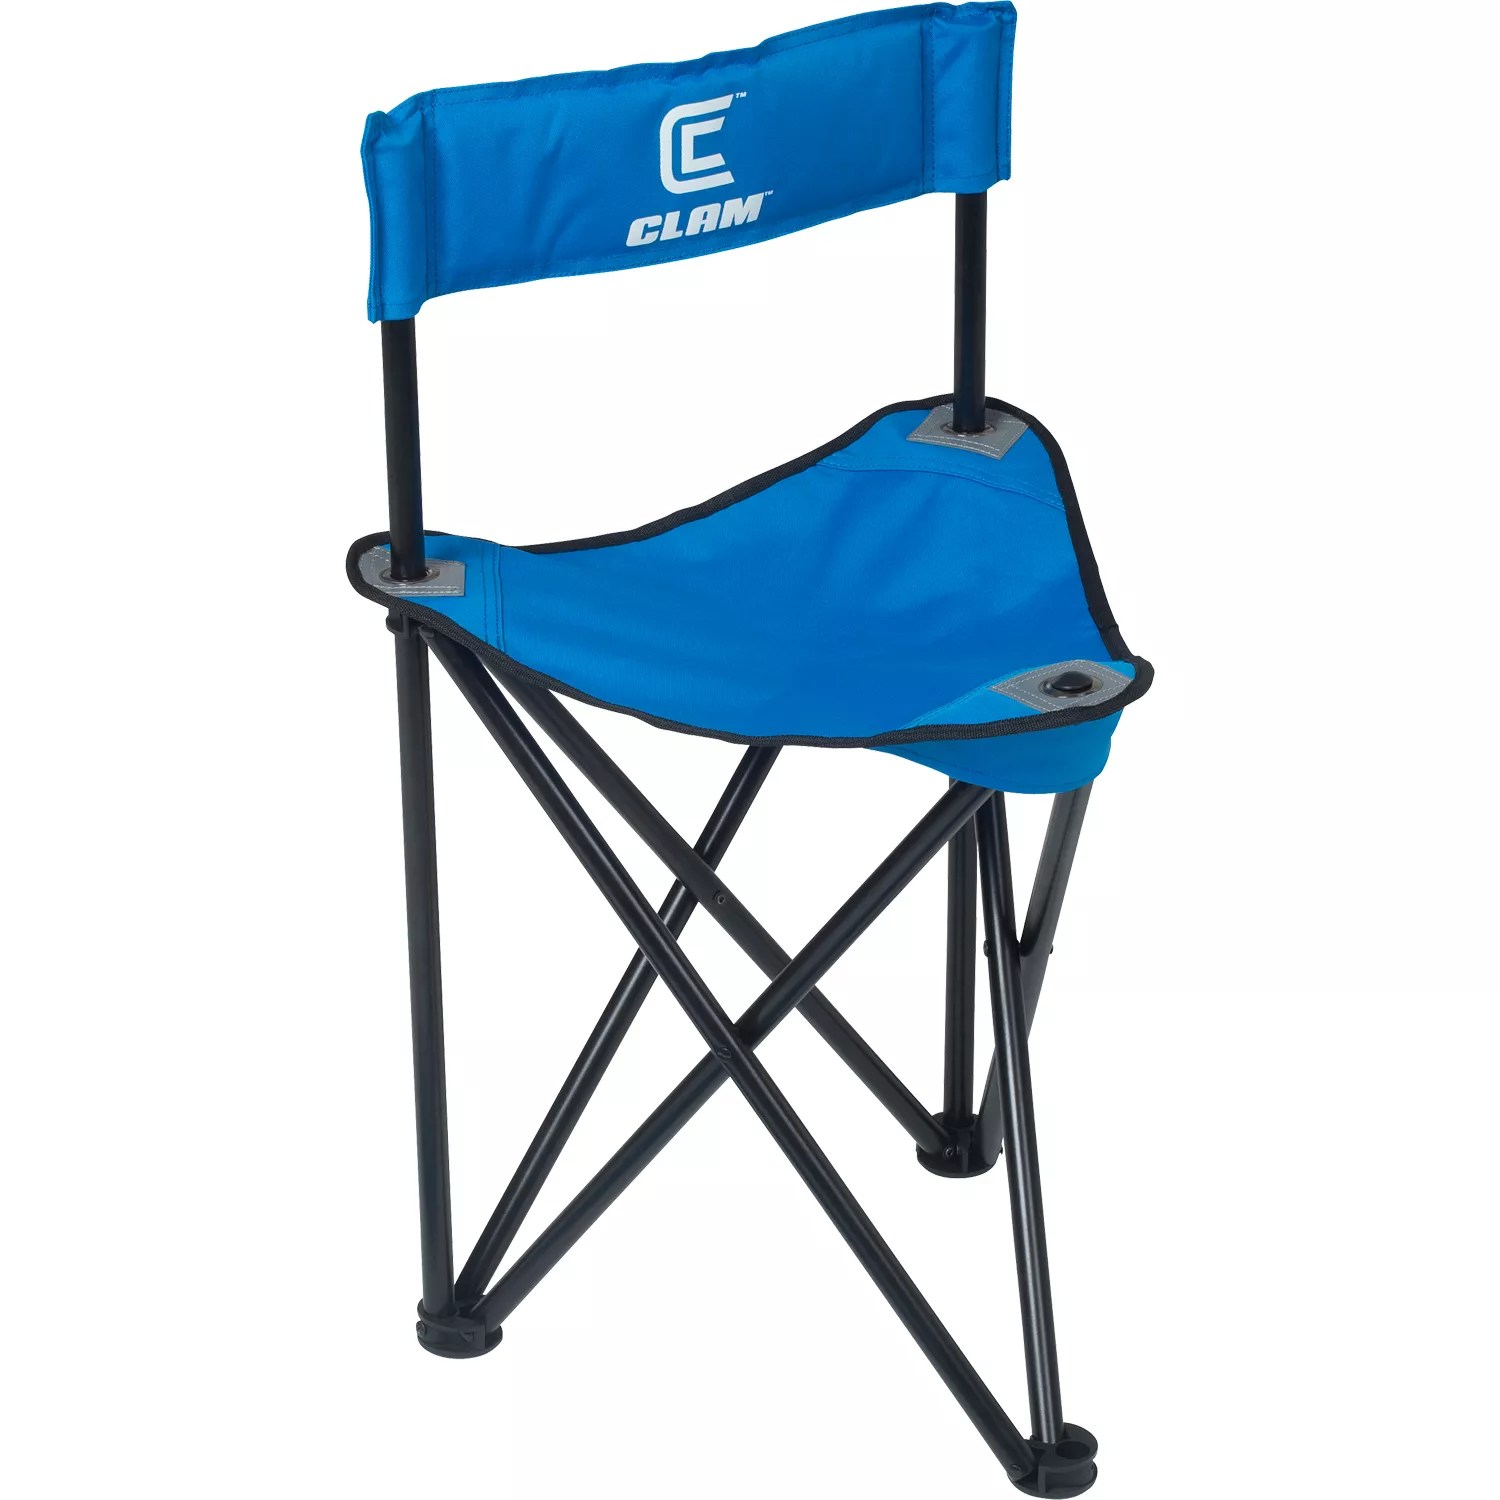 ice fishing lawn chair small white for bedroom clam folding tripod dick s sporting goods 1